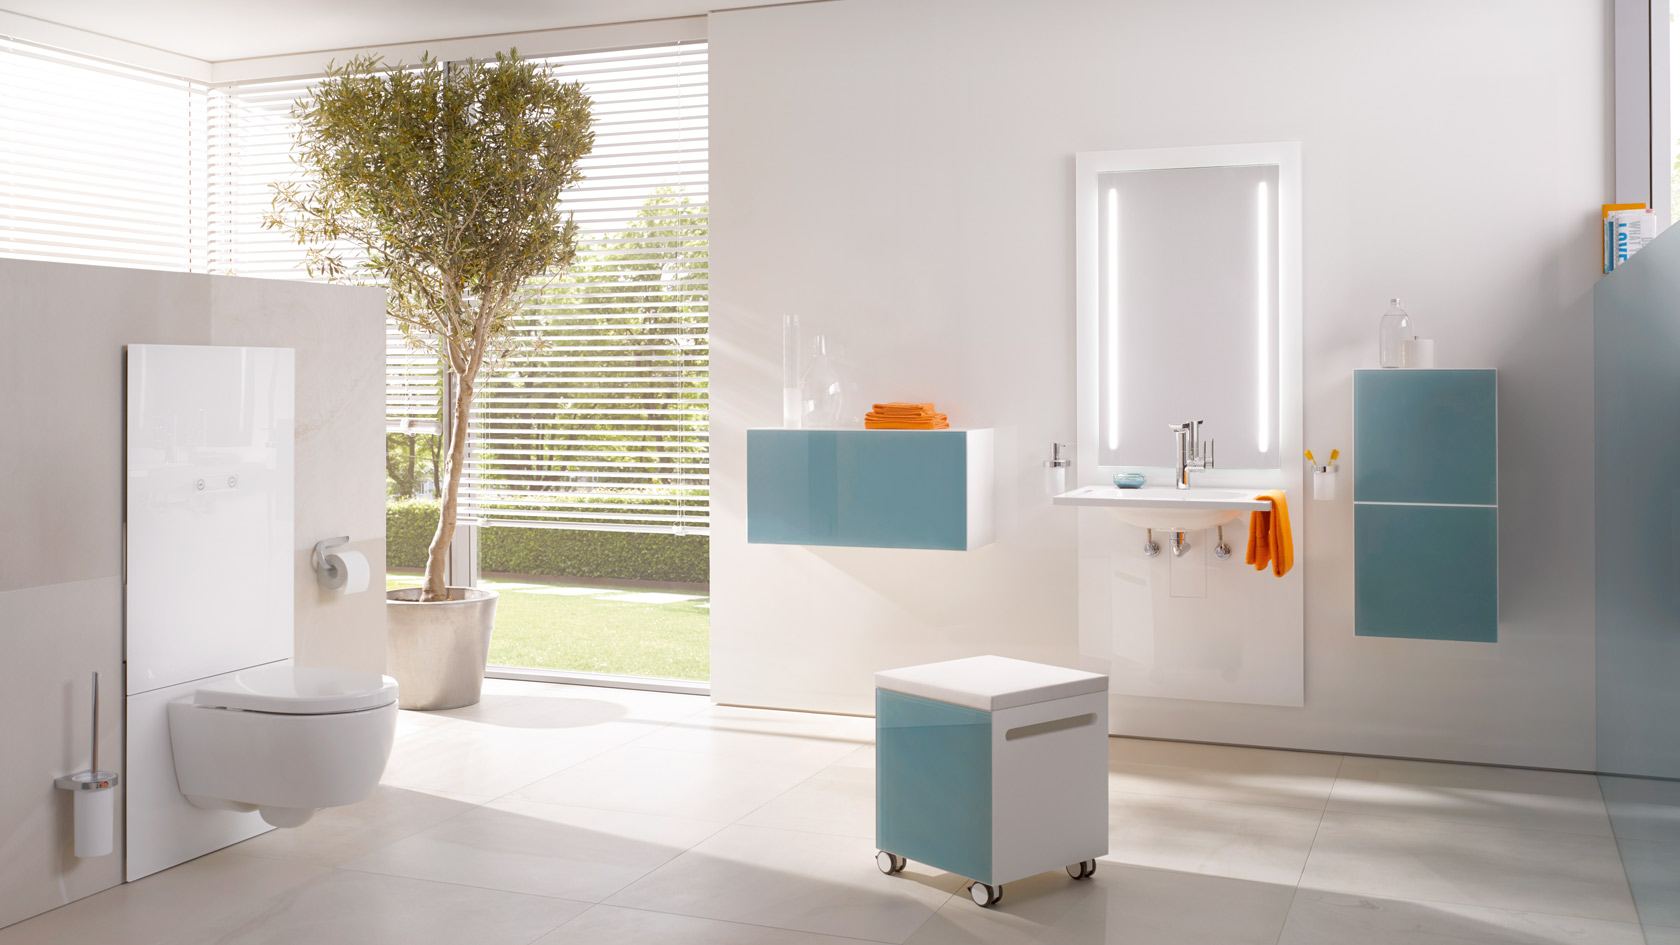 gloss gloss modular bathroom furniture collection aquatrend furniture m40 includes design bathroom furniture with washbasins highgloss cabinets and base 40 furnishings accessories accessibility hardware hewi